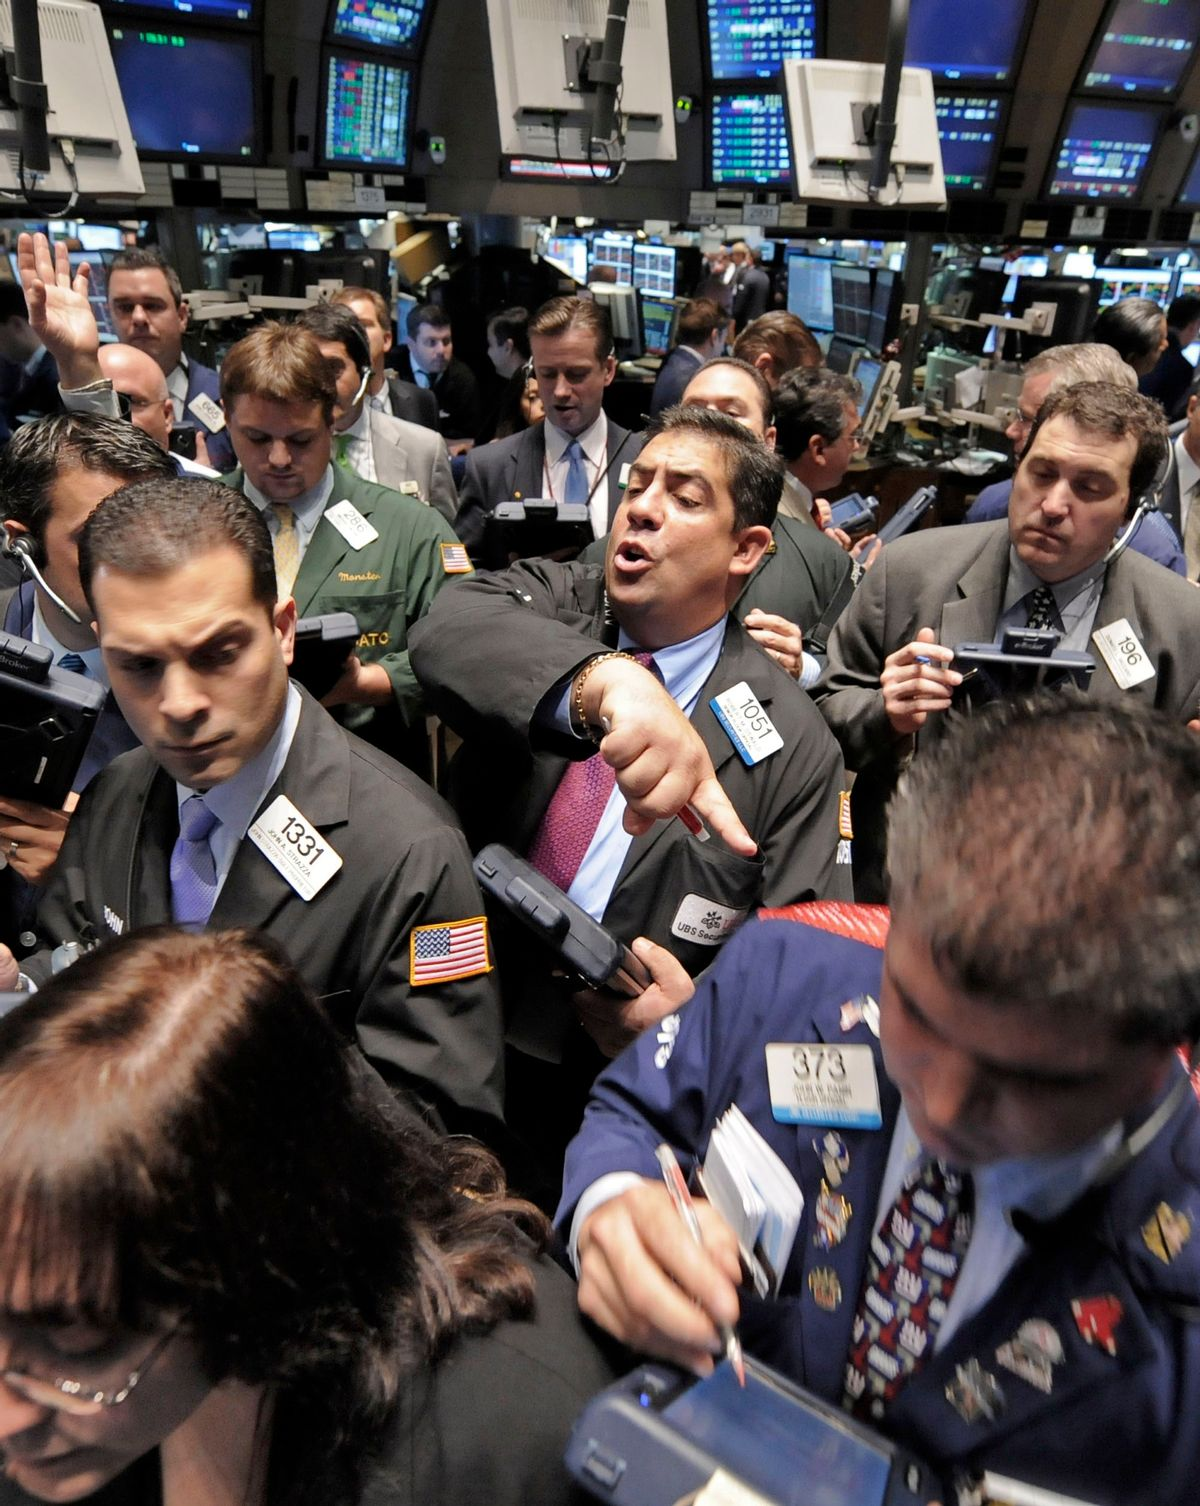 Traders gather at the post that handles General Motors on the floor of the New York Stock Exchange Friday, Nov. 7, 2008. (AP Photo/Richard Drew) (AP)